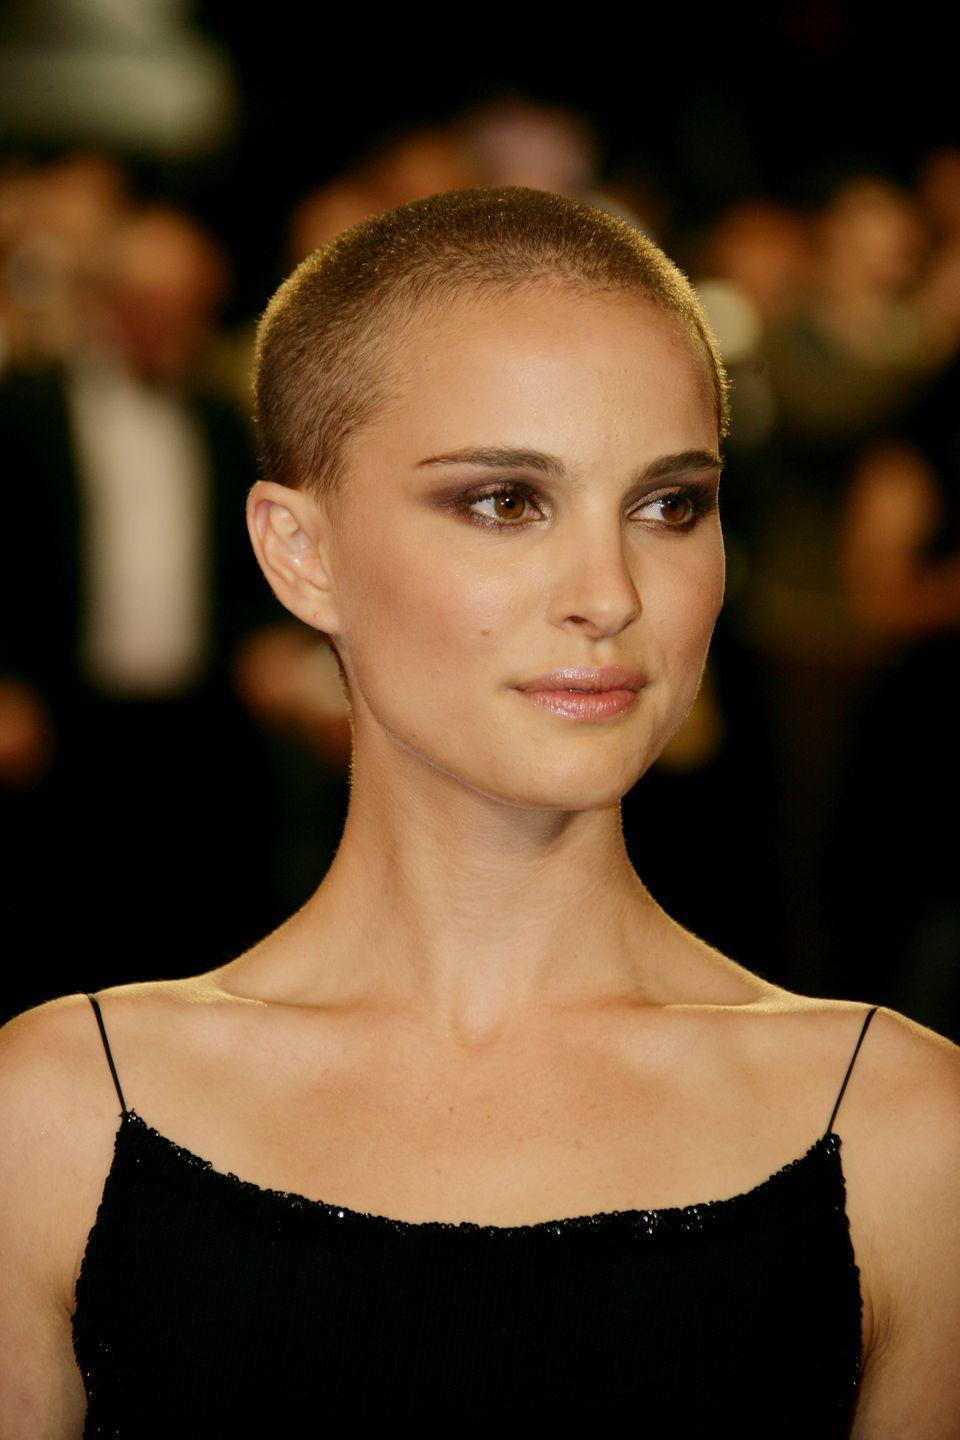 <p>Natalie Portman's buzzcut in V For Vendetta has been inspiring women to take the plunge ever since. </p>